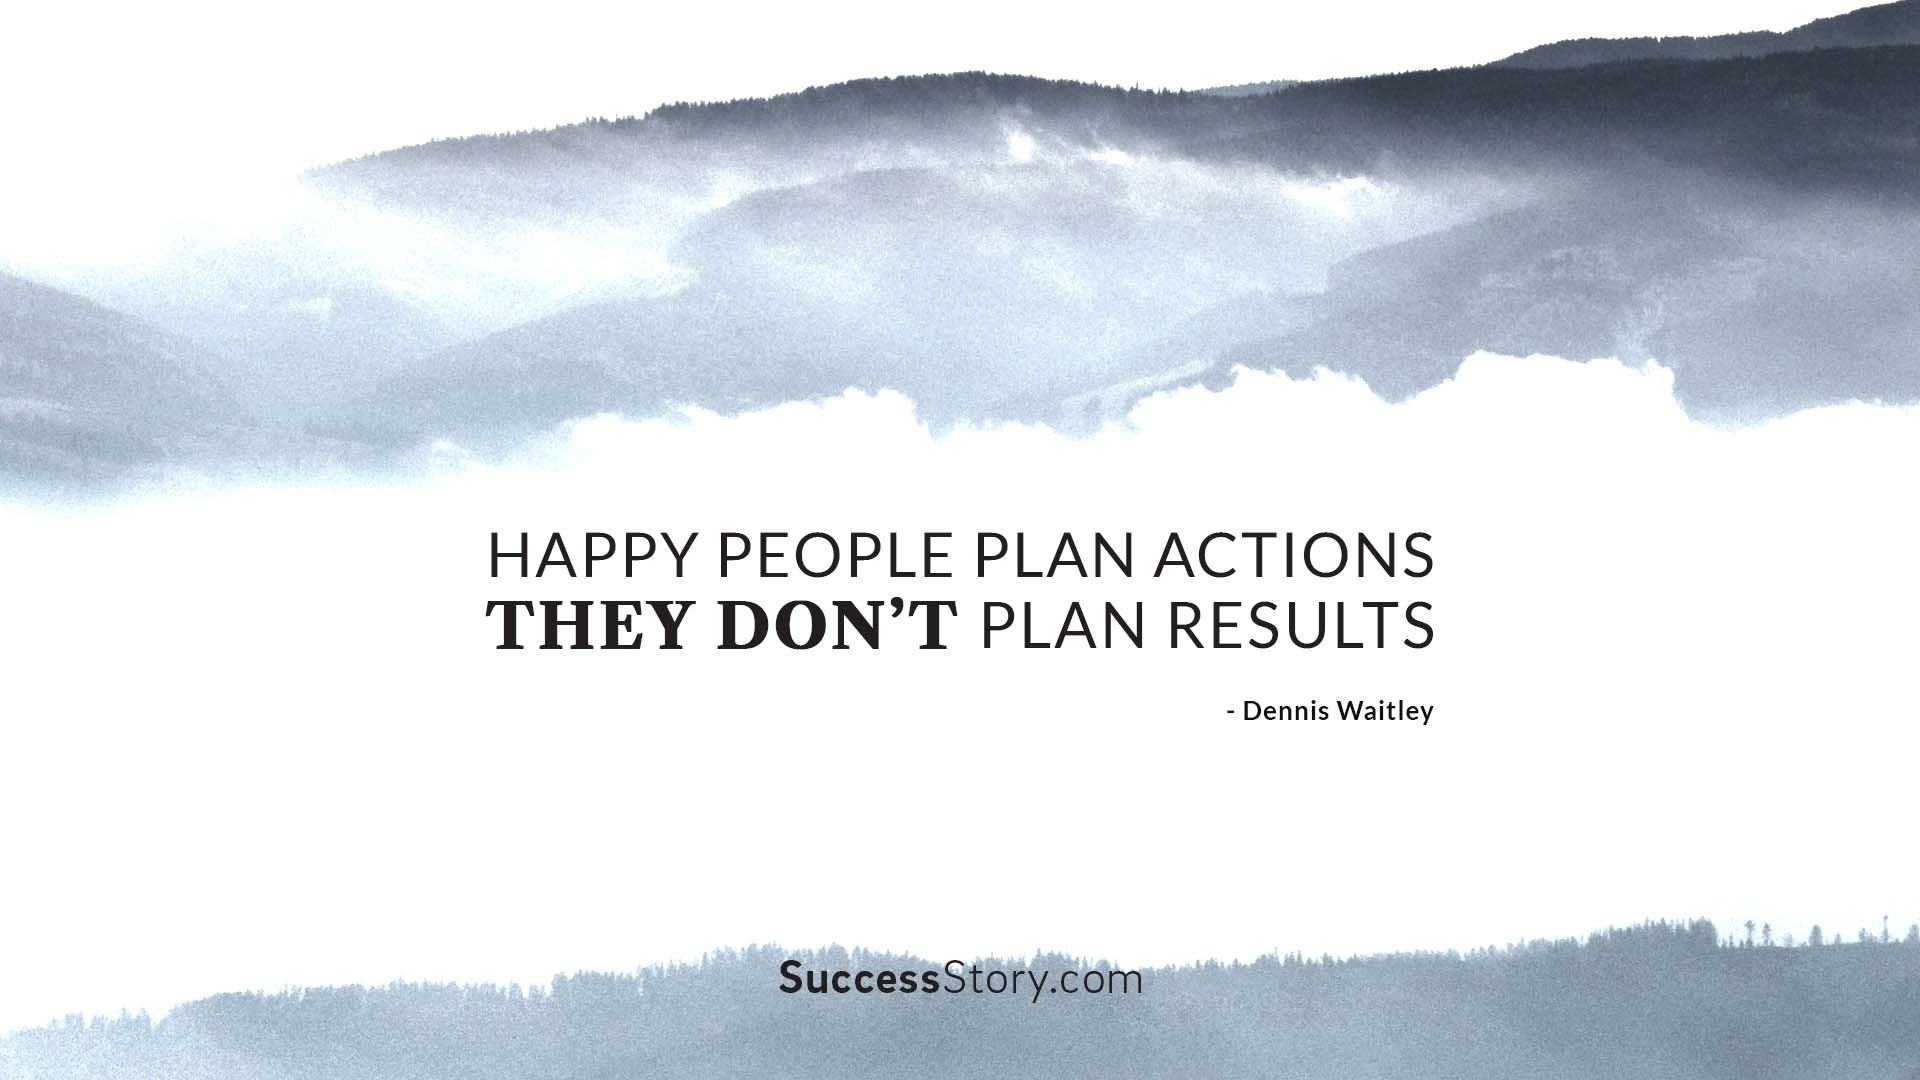 Happy people plan actions, the